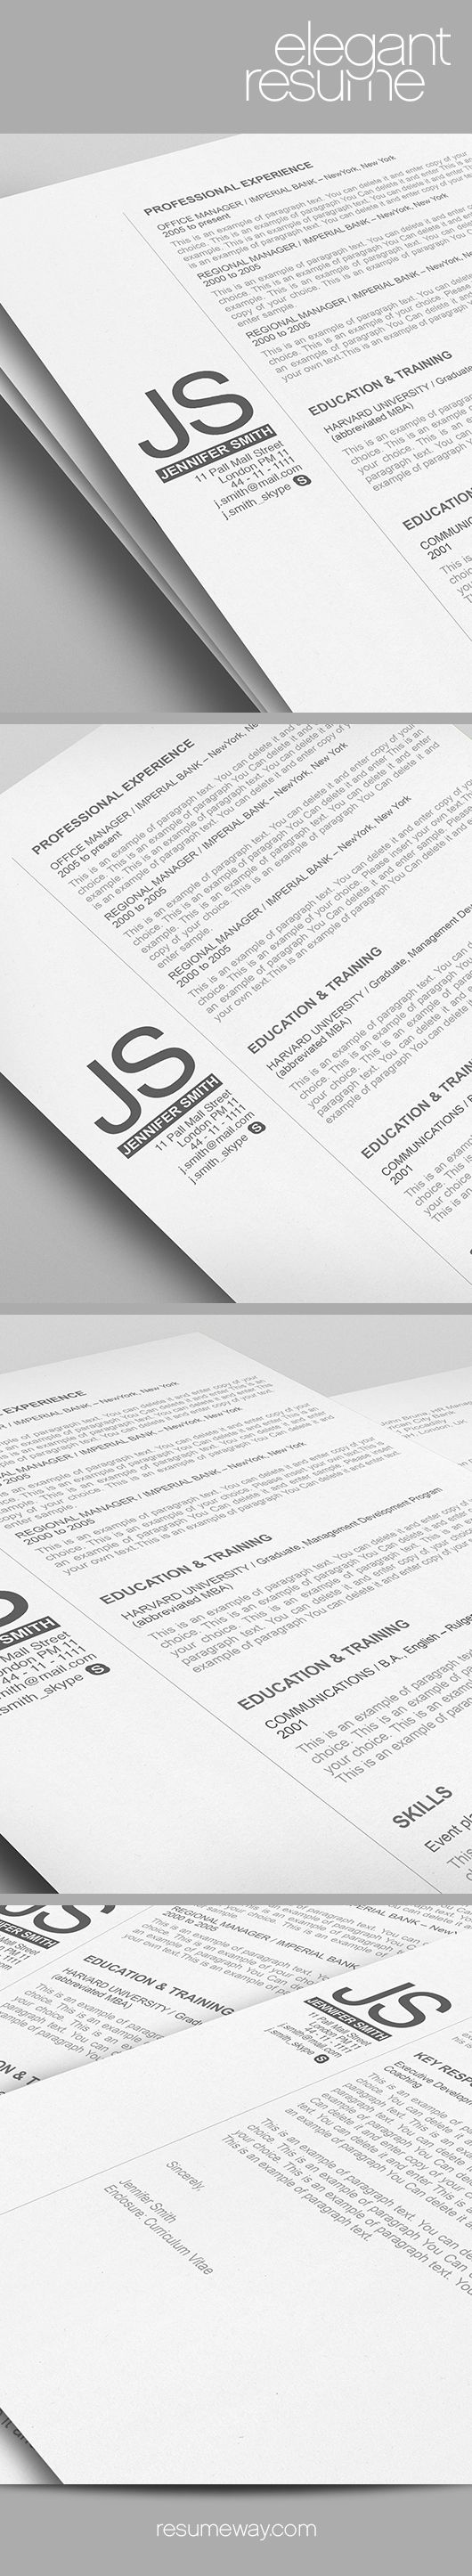 best ideas about resume cover letter examples living a beautiful life elegant resume template 110540 premium line of resume cover letter templates easy edit ms word apple pages resume